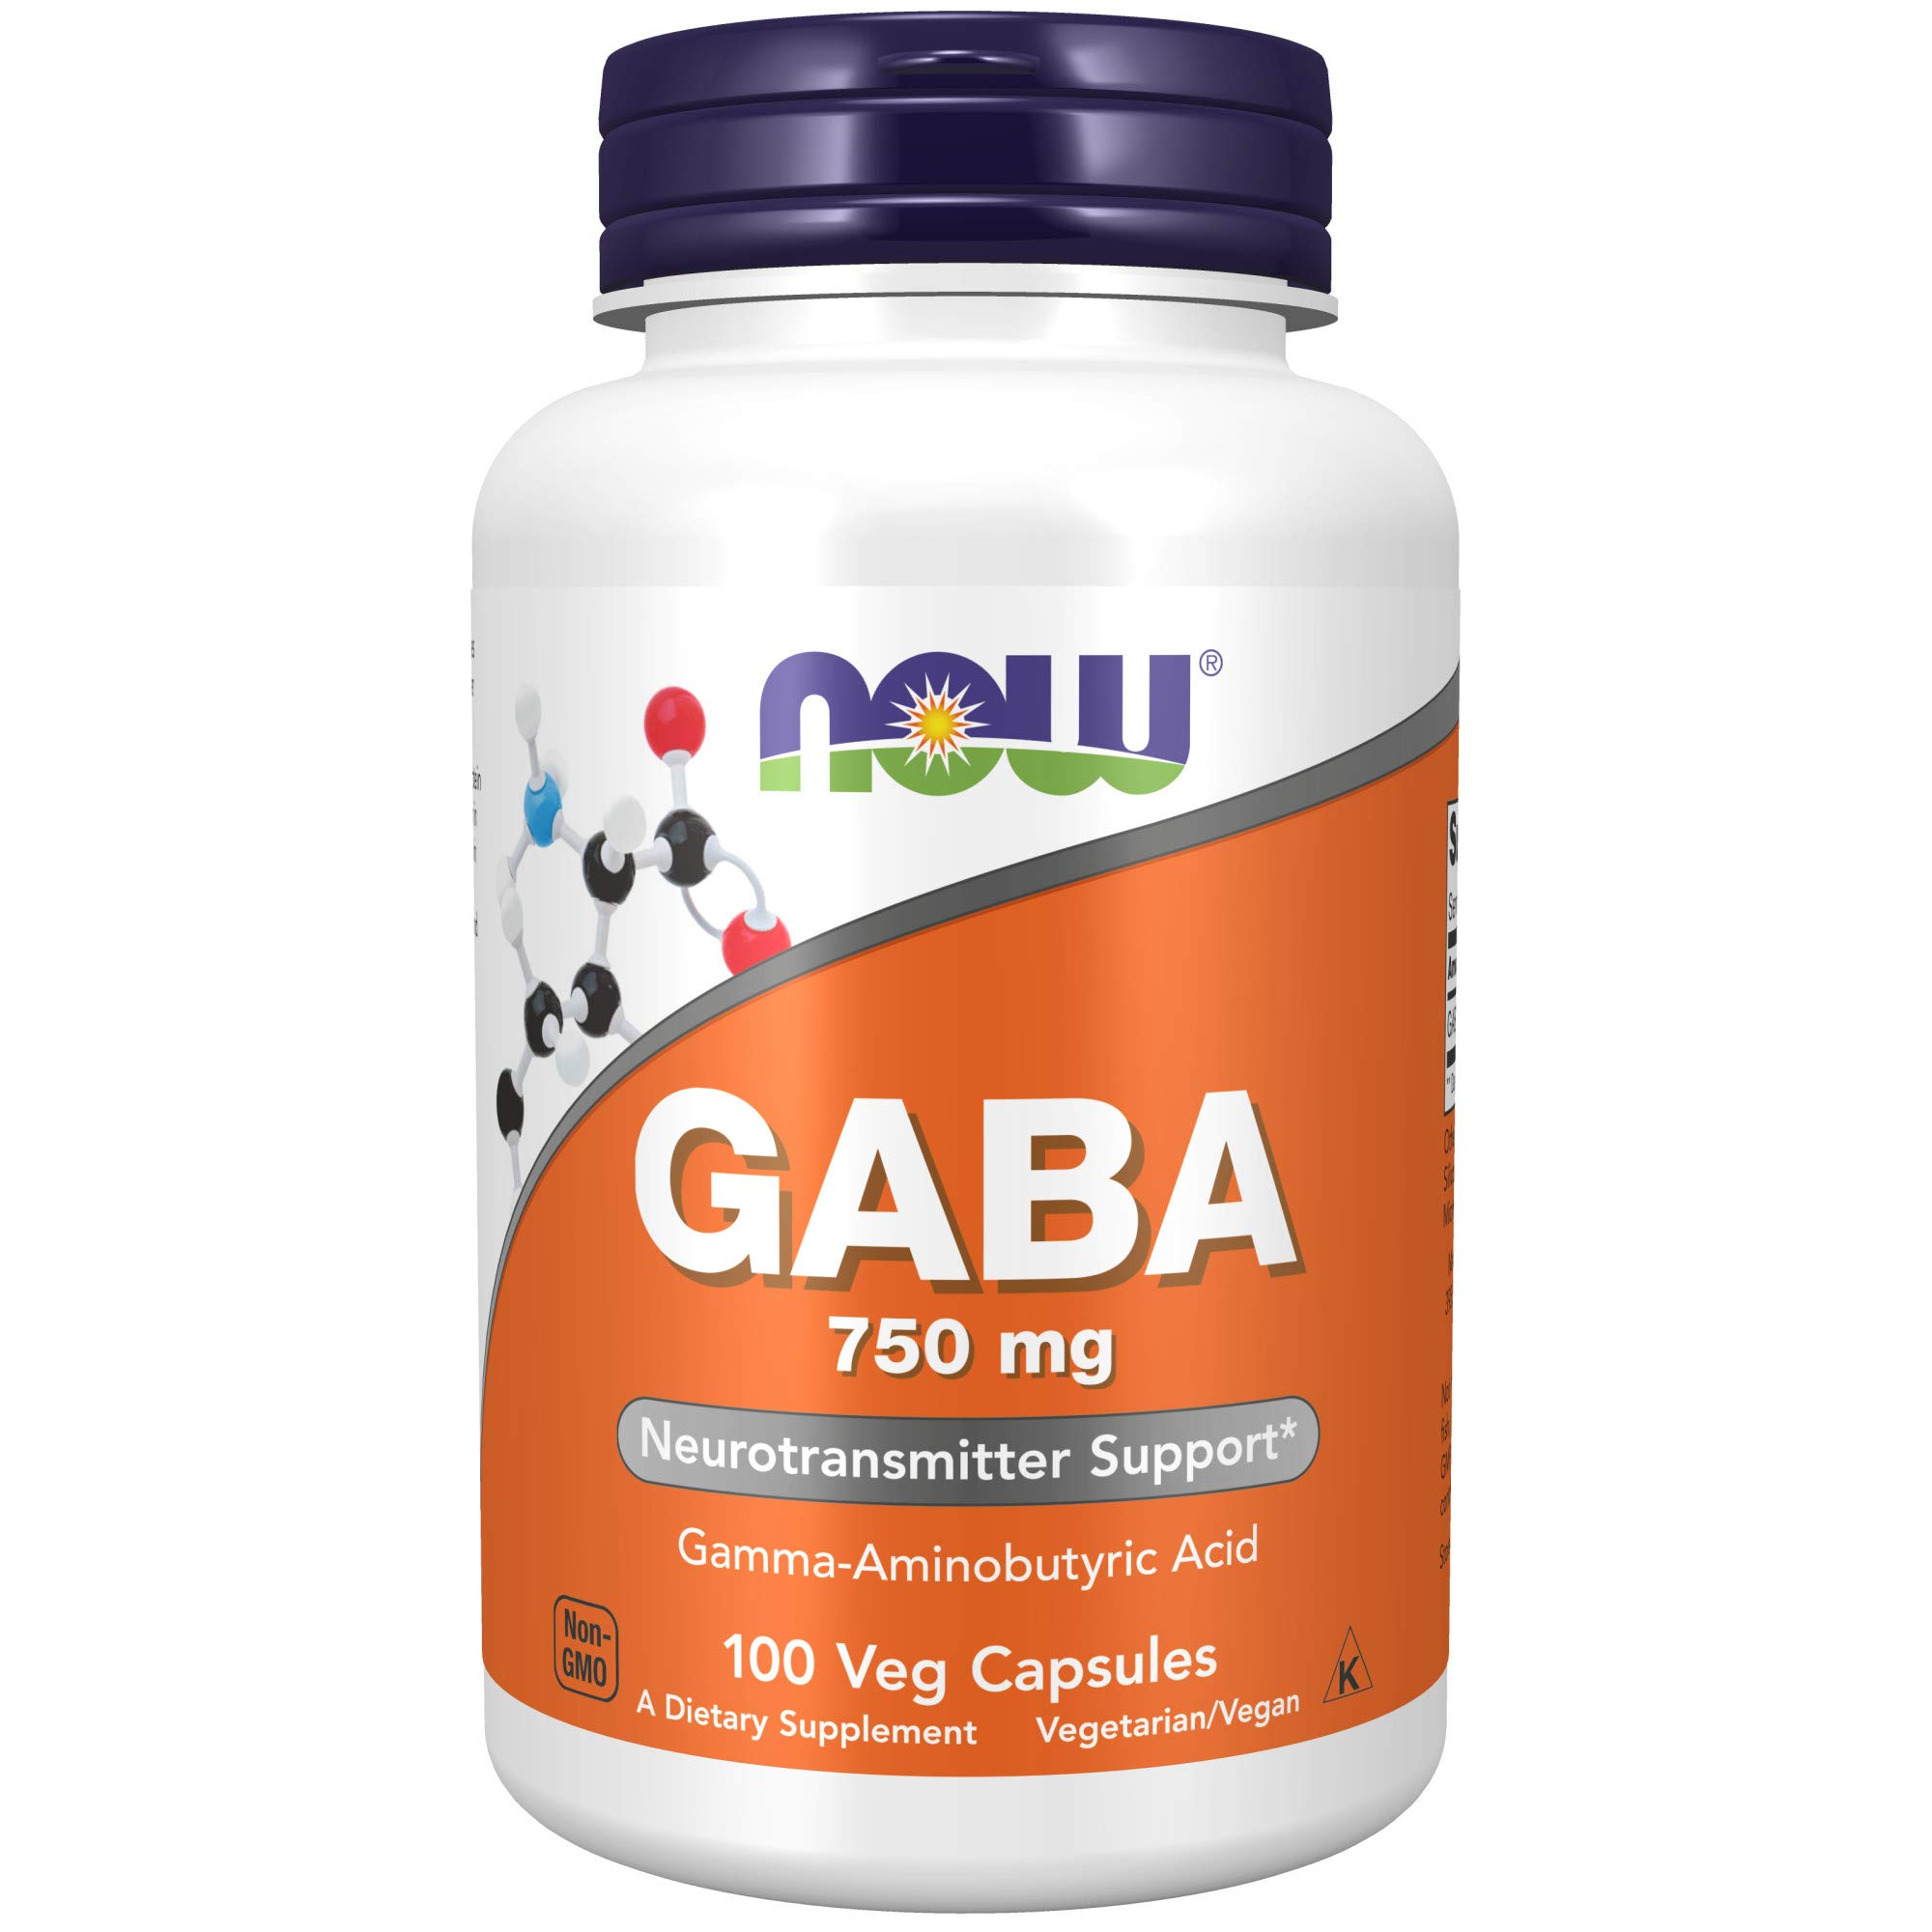 NOW Supplements GABA (Gamma-Aminobutyric Acid) 750 mg Neurotransmitter Support , 100 Veg Capsules